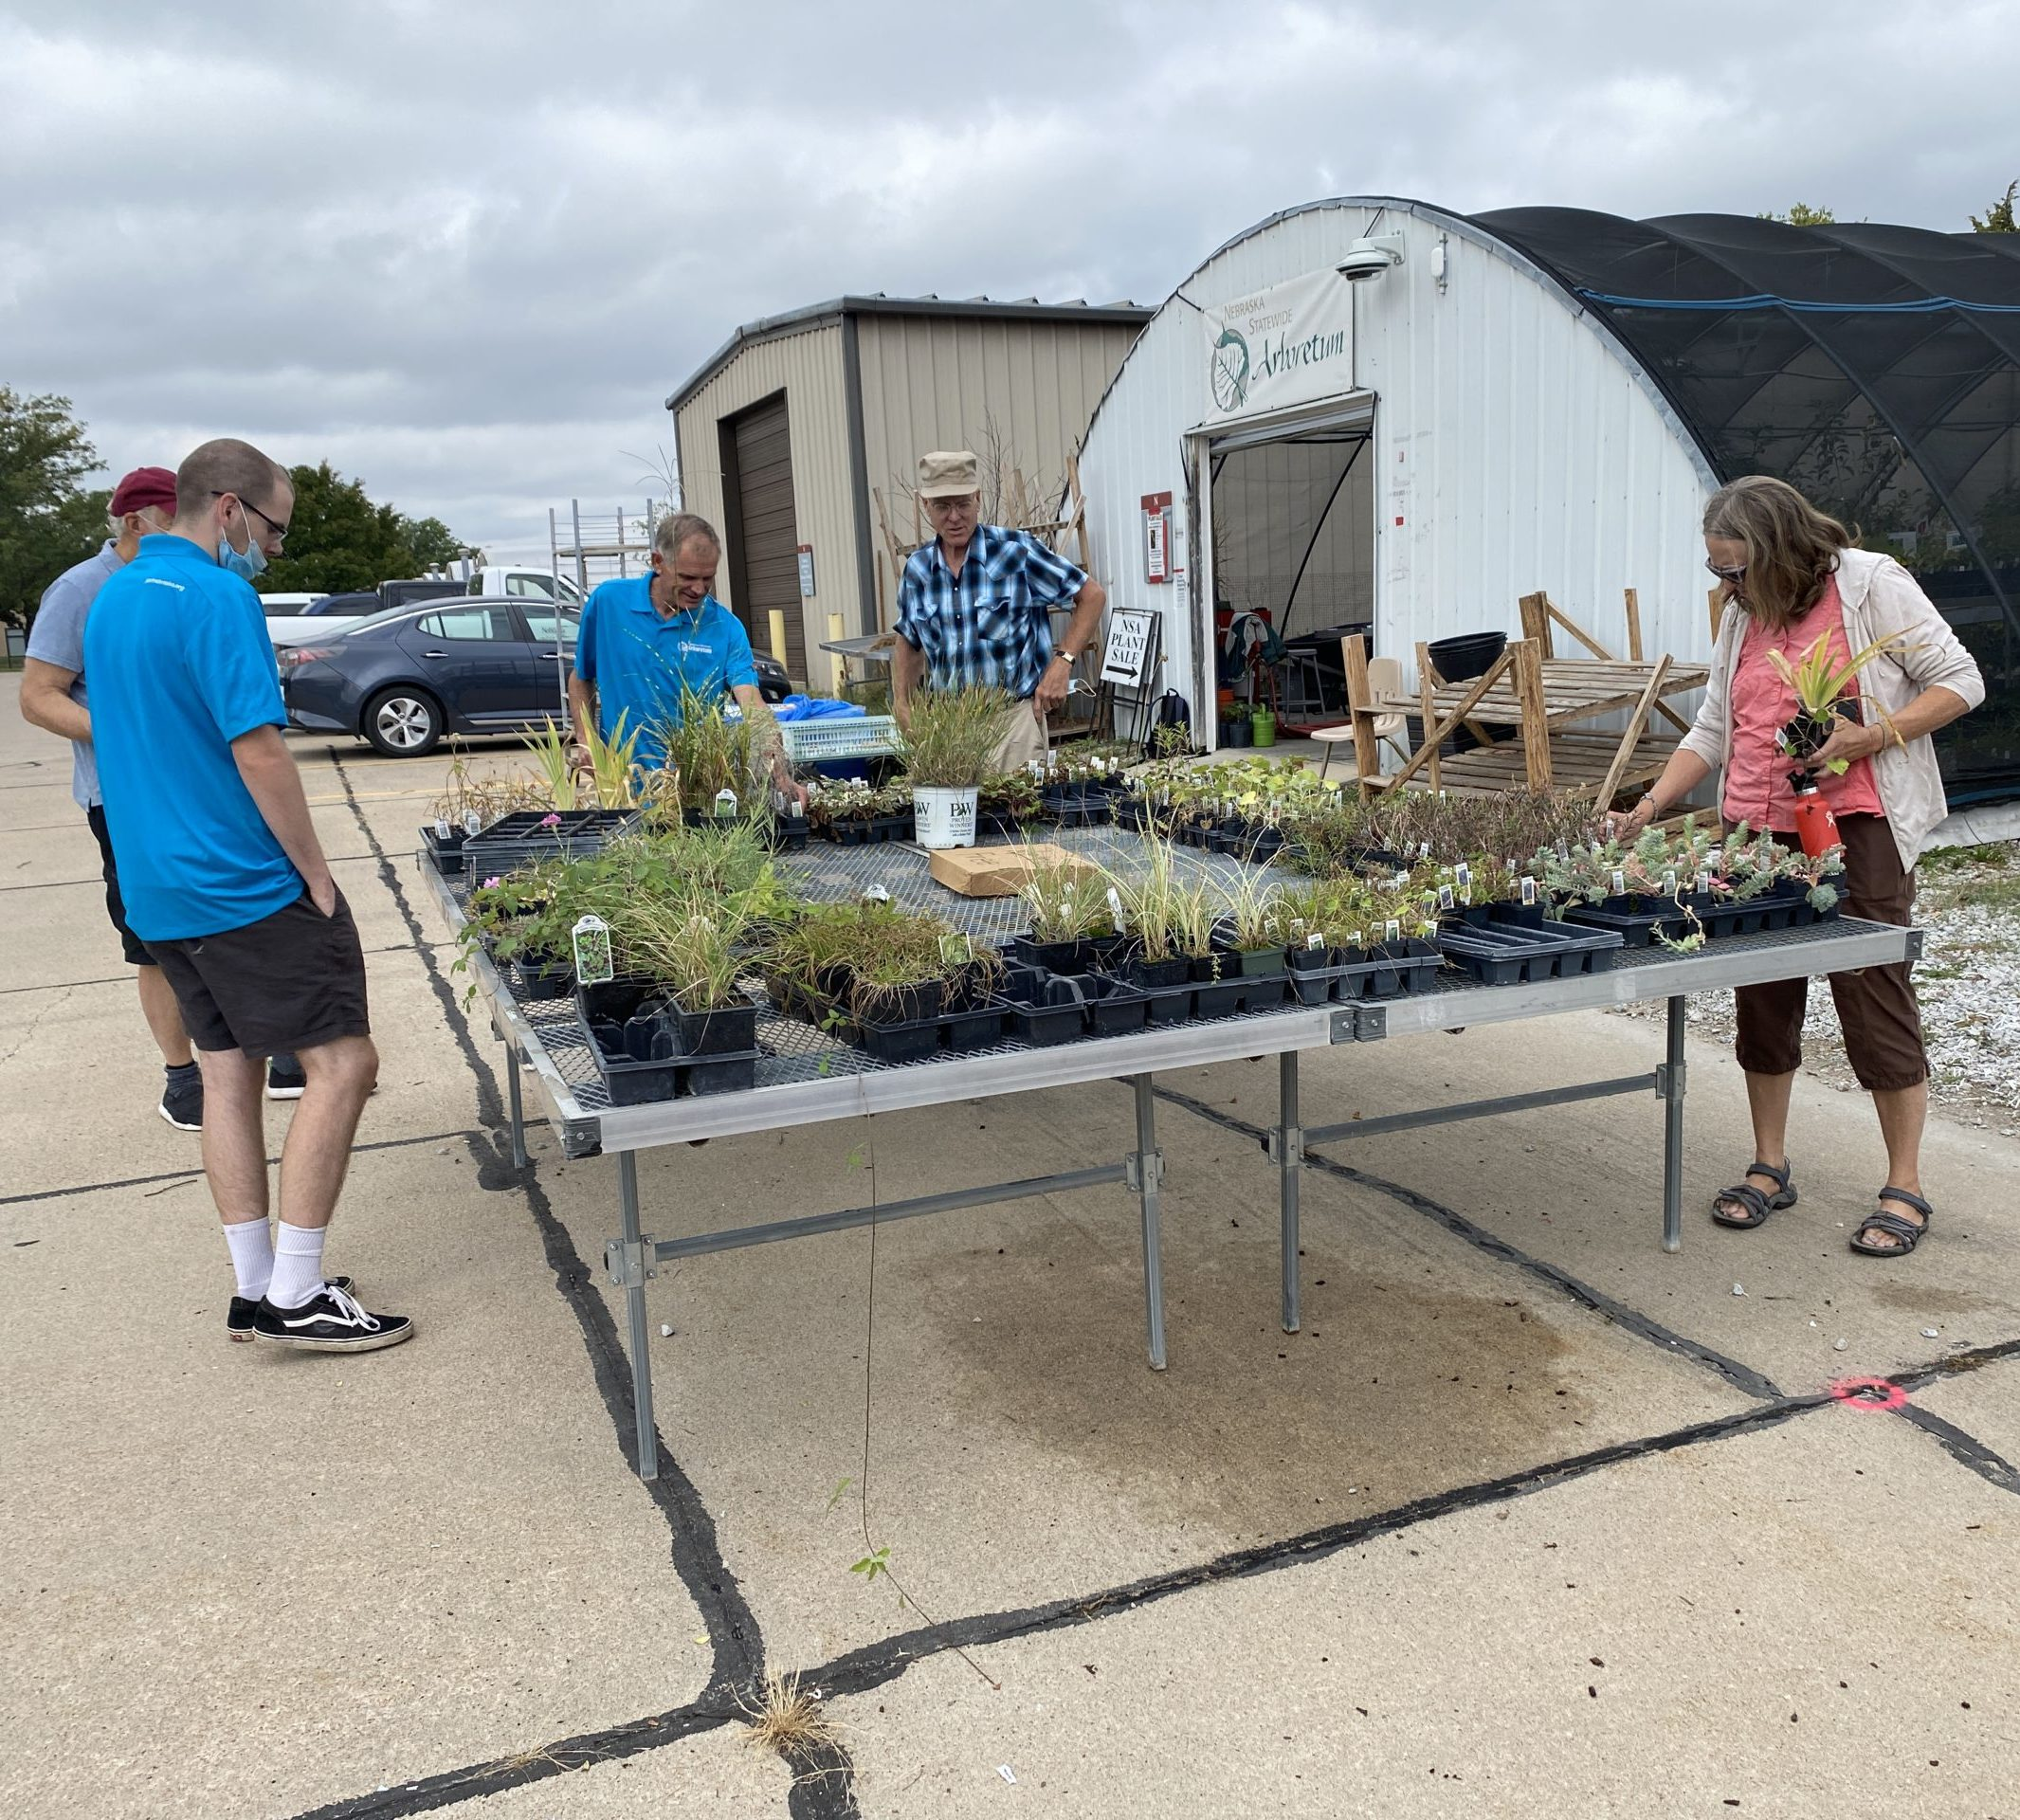 IMG 1262 scaled e1633629053552 - Arboretum hosts native perennial plants sale on UNL's East Campus